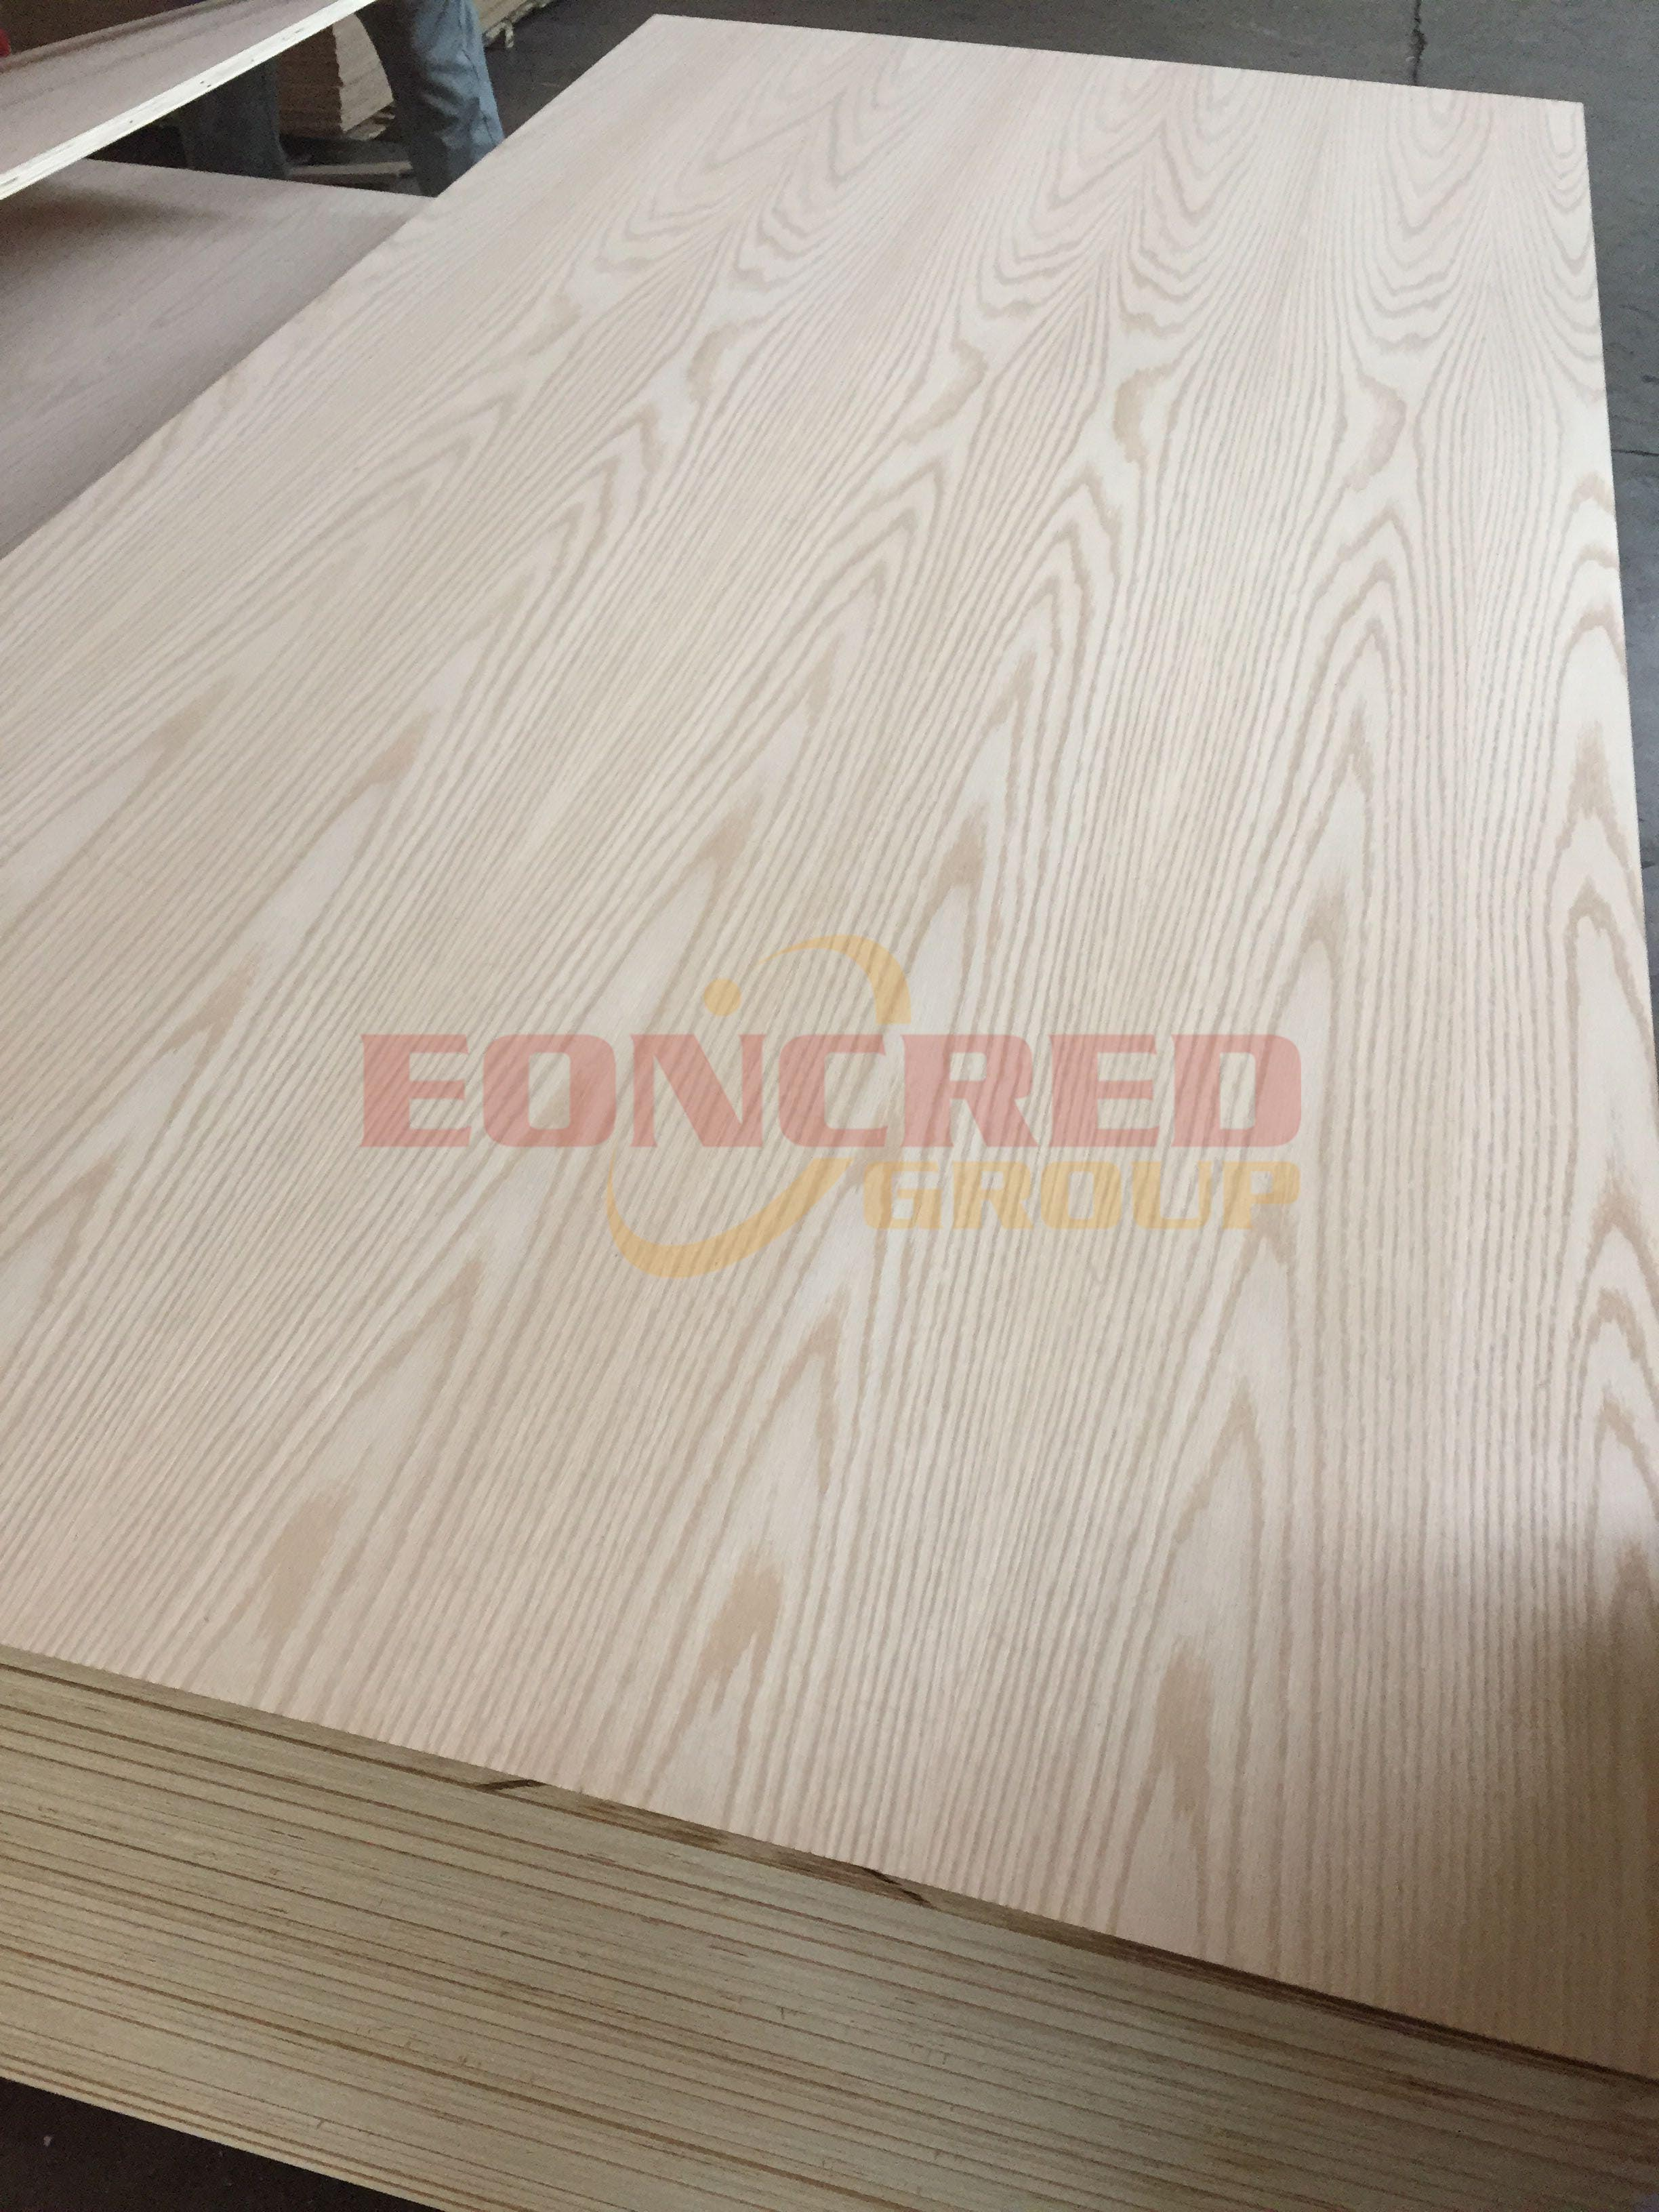 Fancy Plywood / veneered MDF for cabinate funiture door